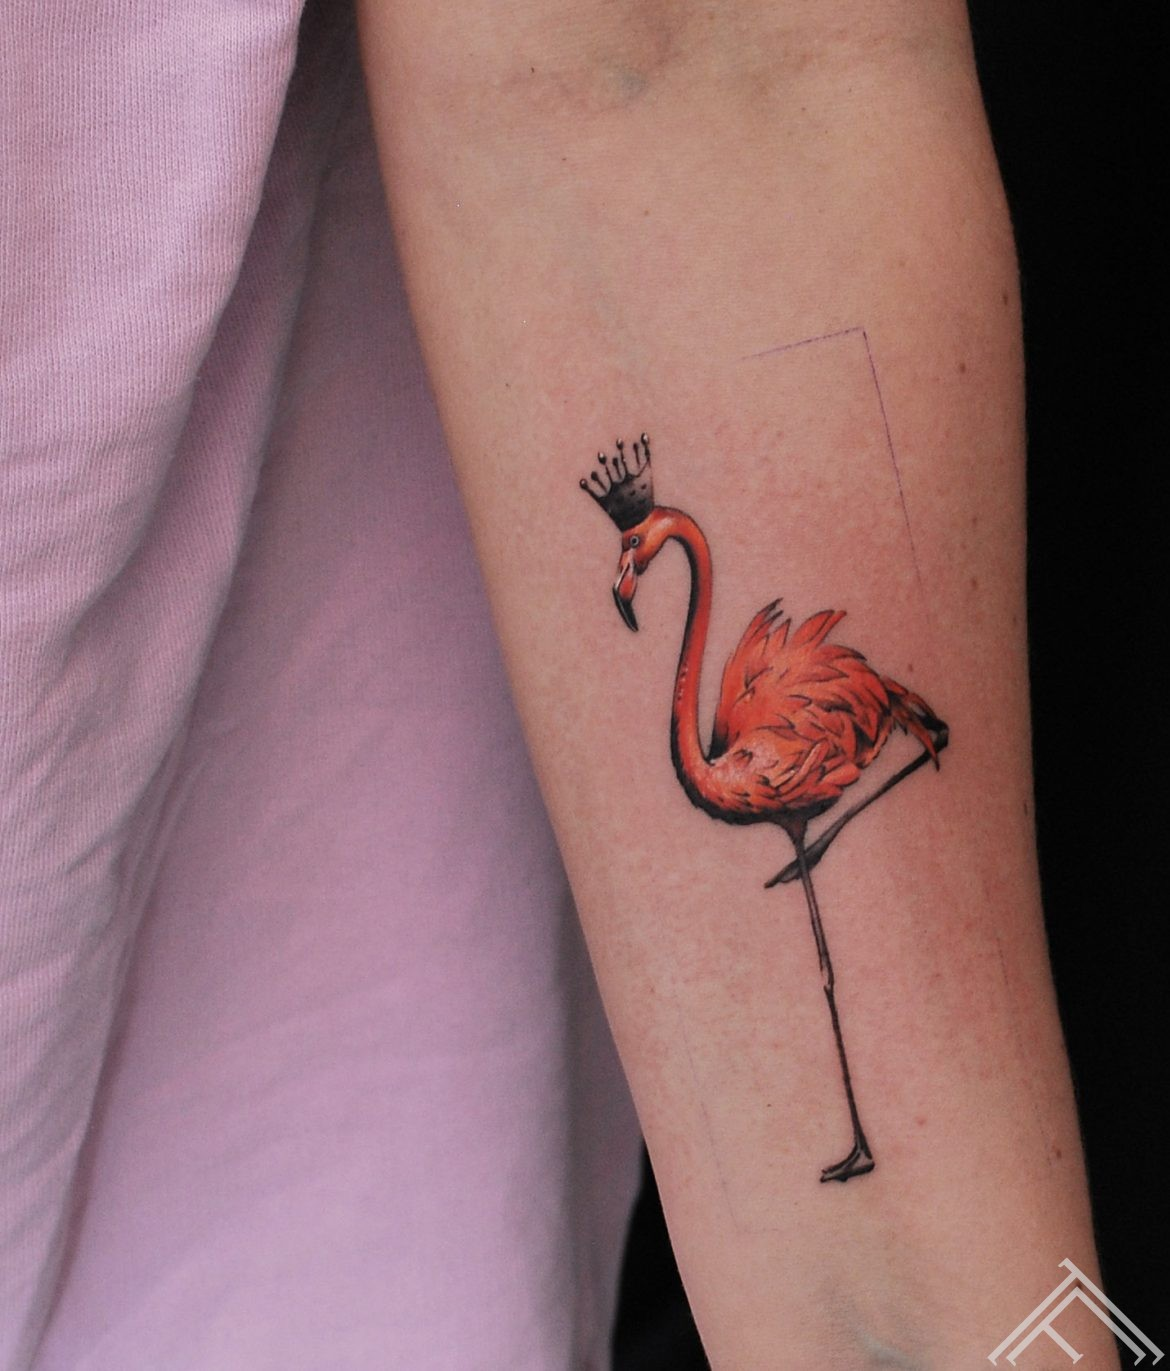 flamingo-martinssilins-tattoofrequency-riga